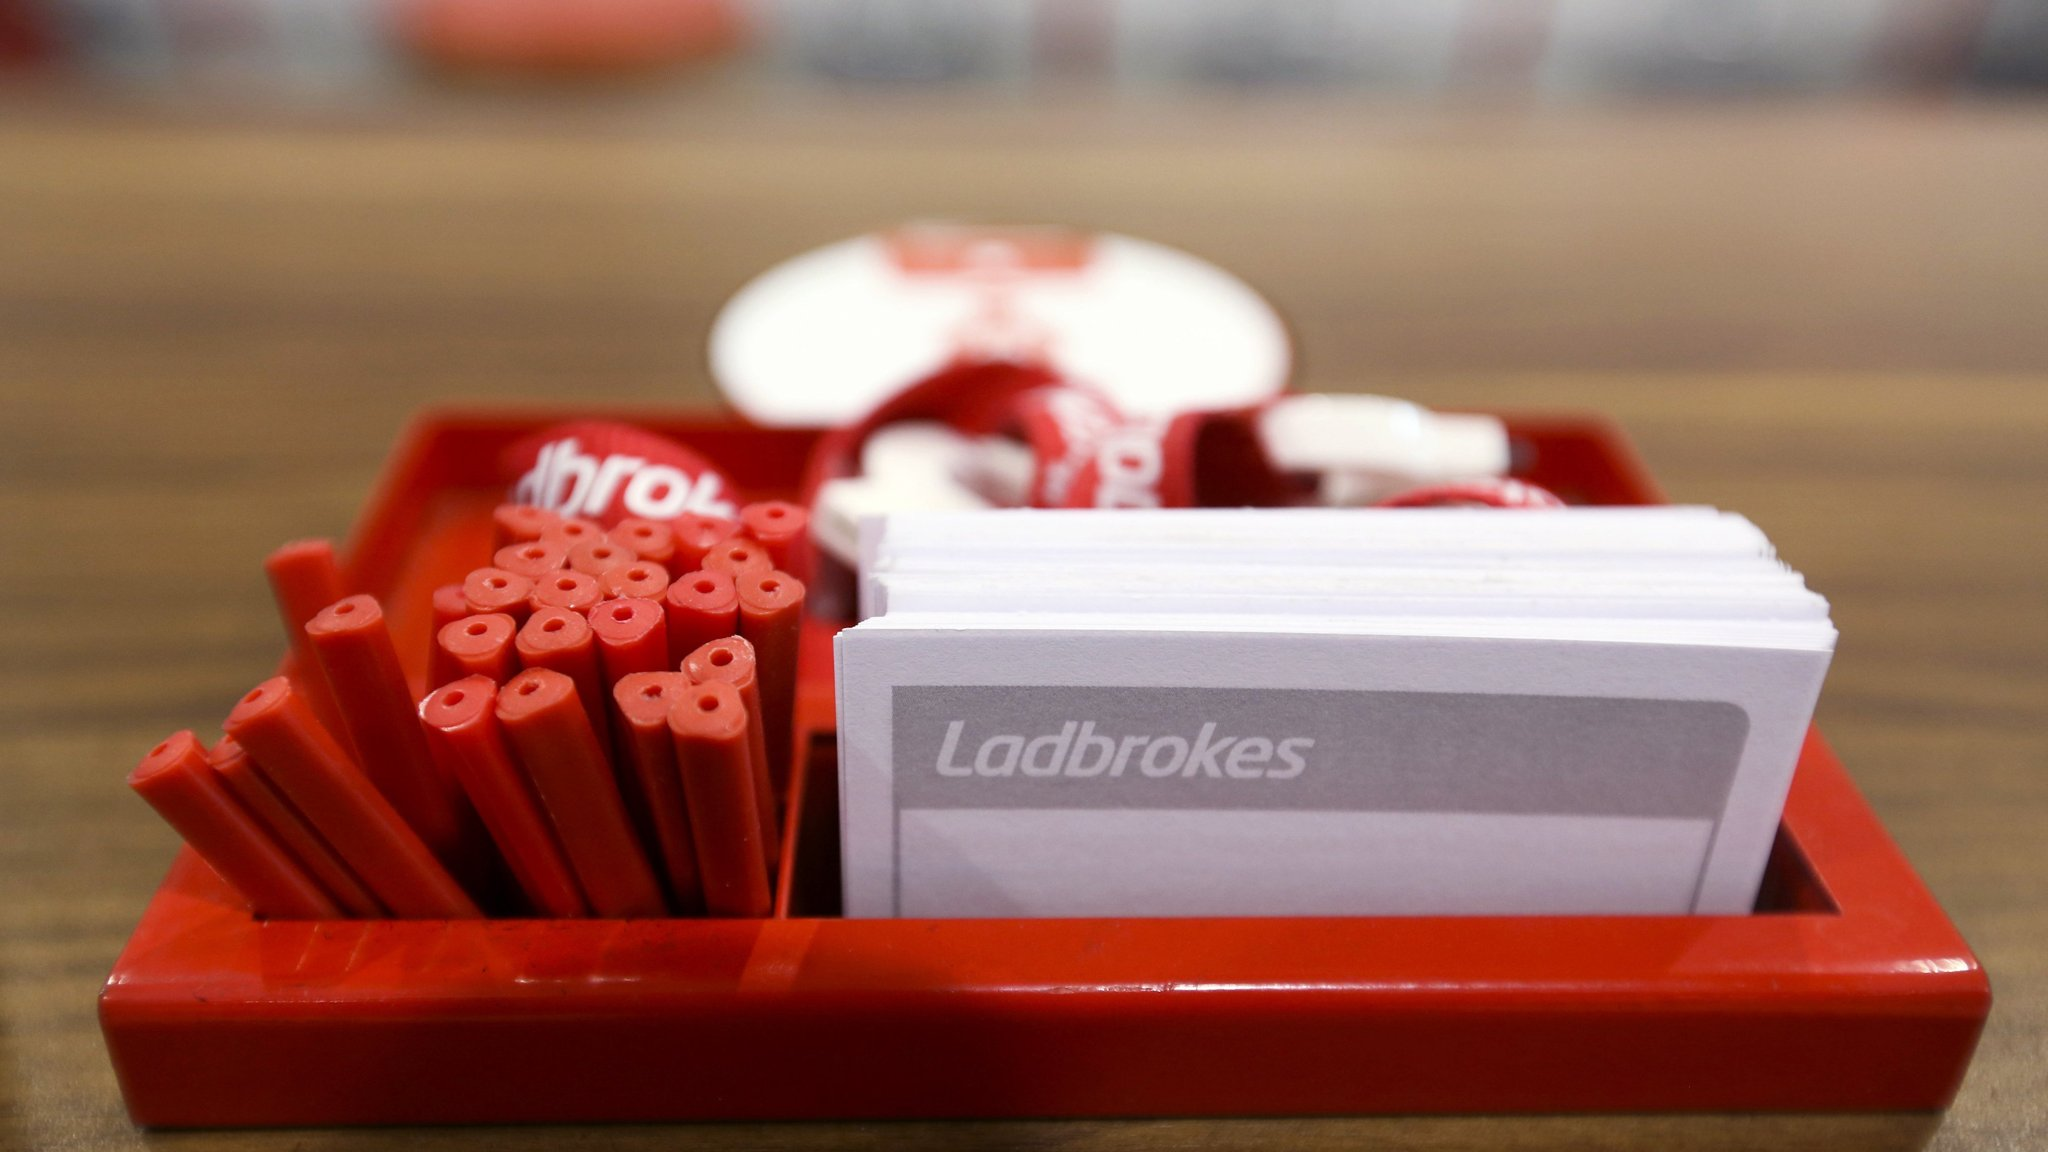 Chief of Ladbrokes Coral owner awarded £19 1m for 2018